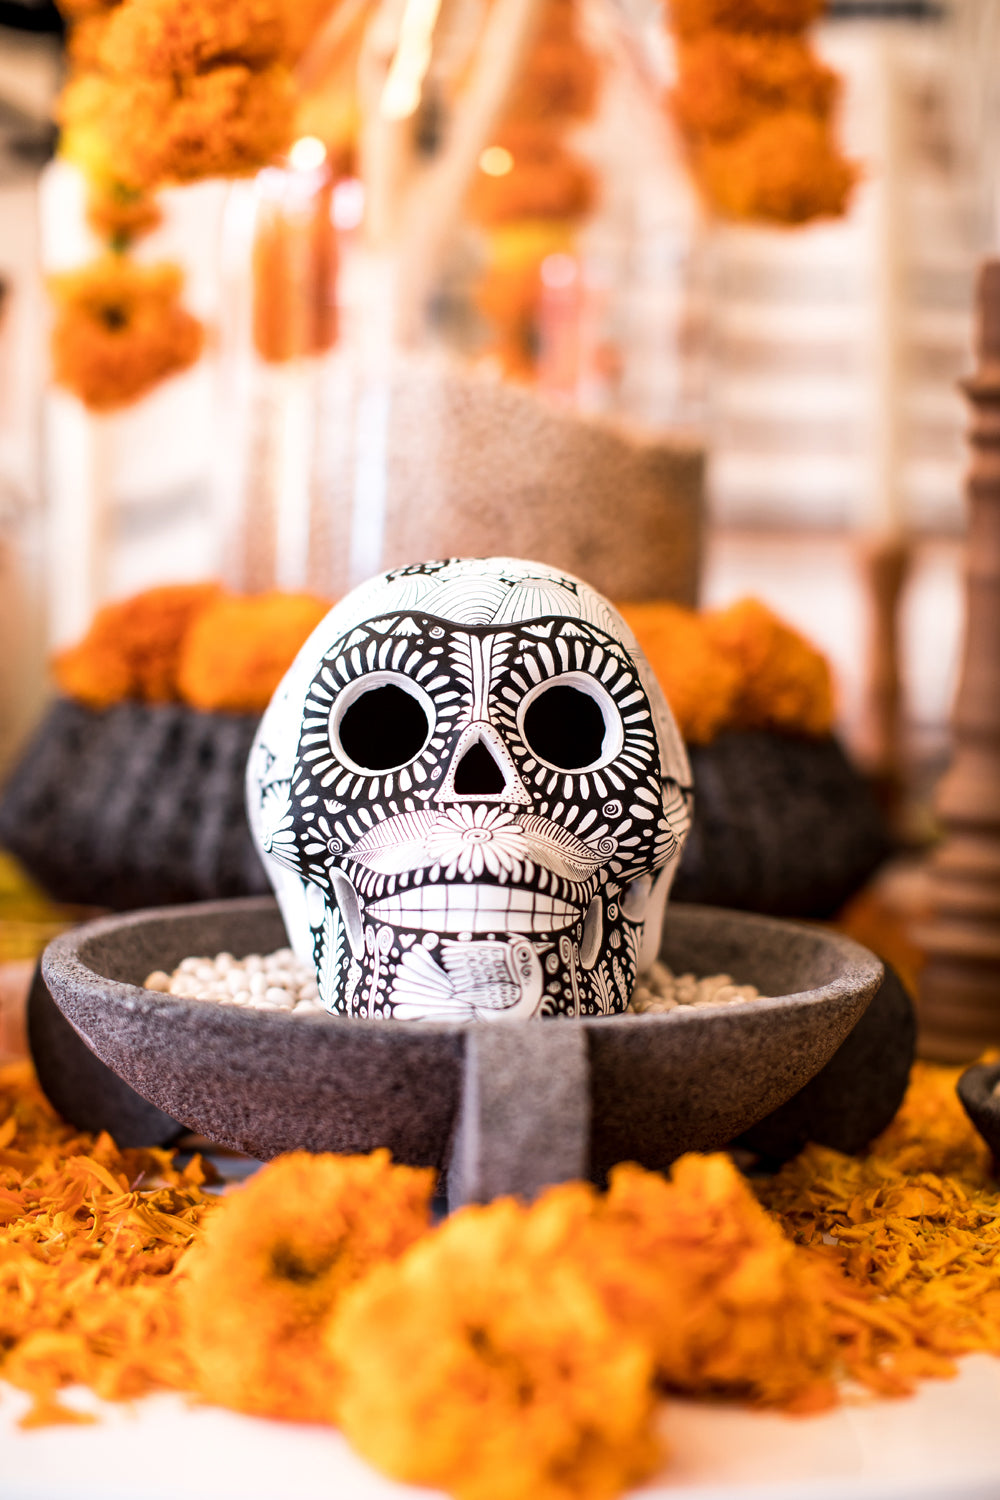 black and white hand painted Mexican skull day of the dead altar día de los muertos ofrenda